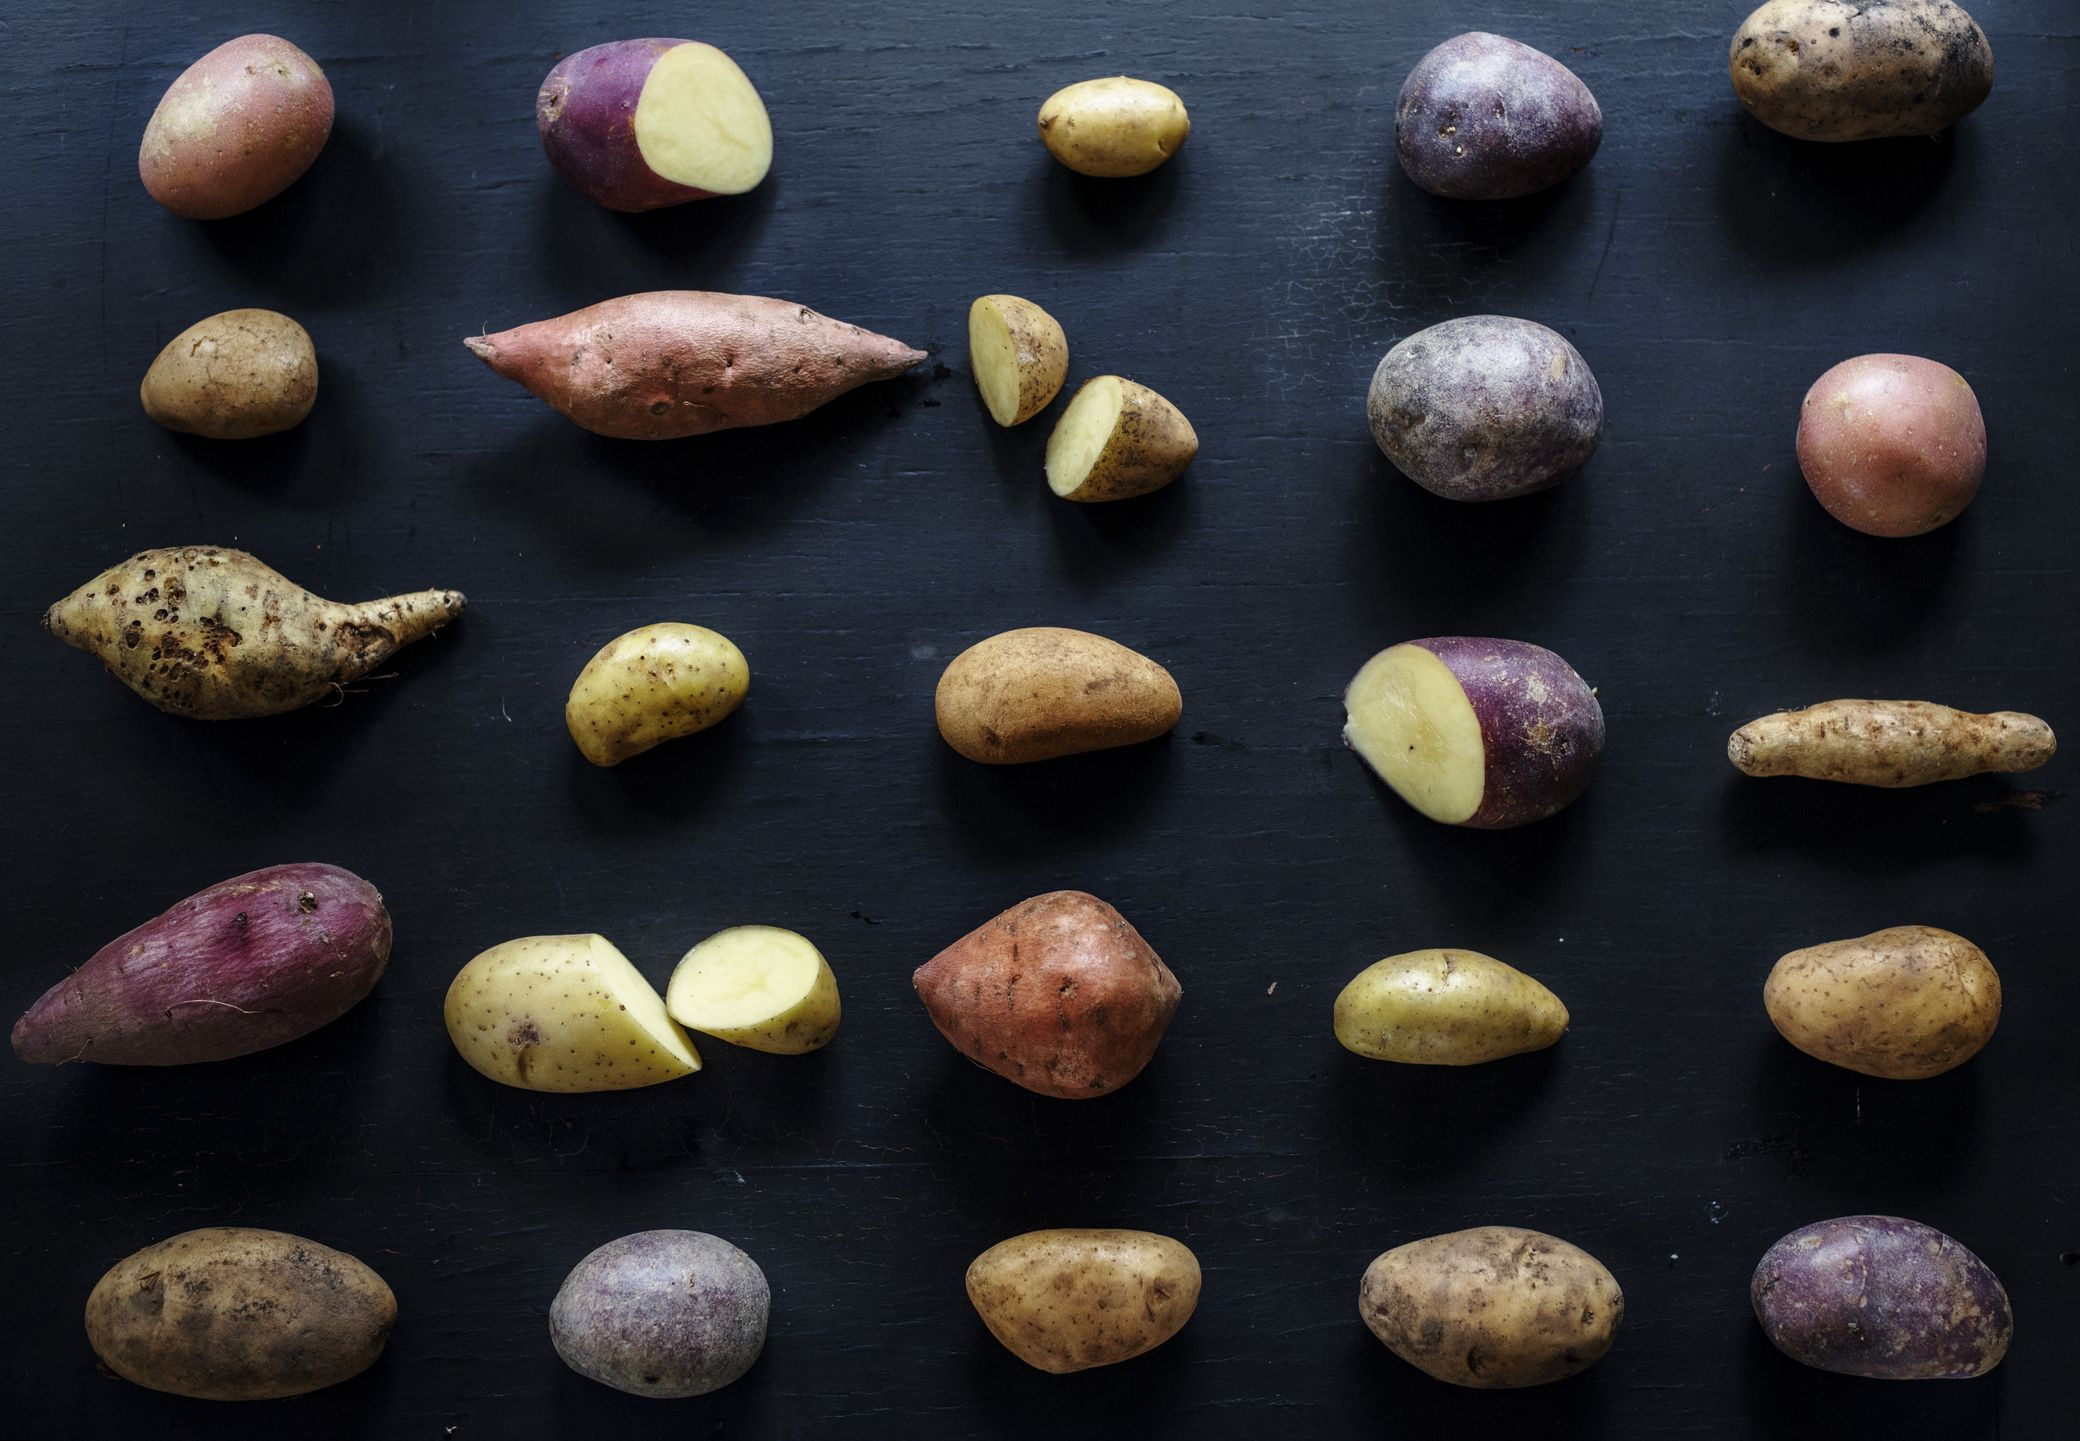 Sweet Potatoes Vs. Potatoes: Which Are Healthier? Nutritionists Weigh In